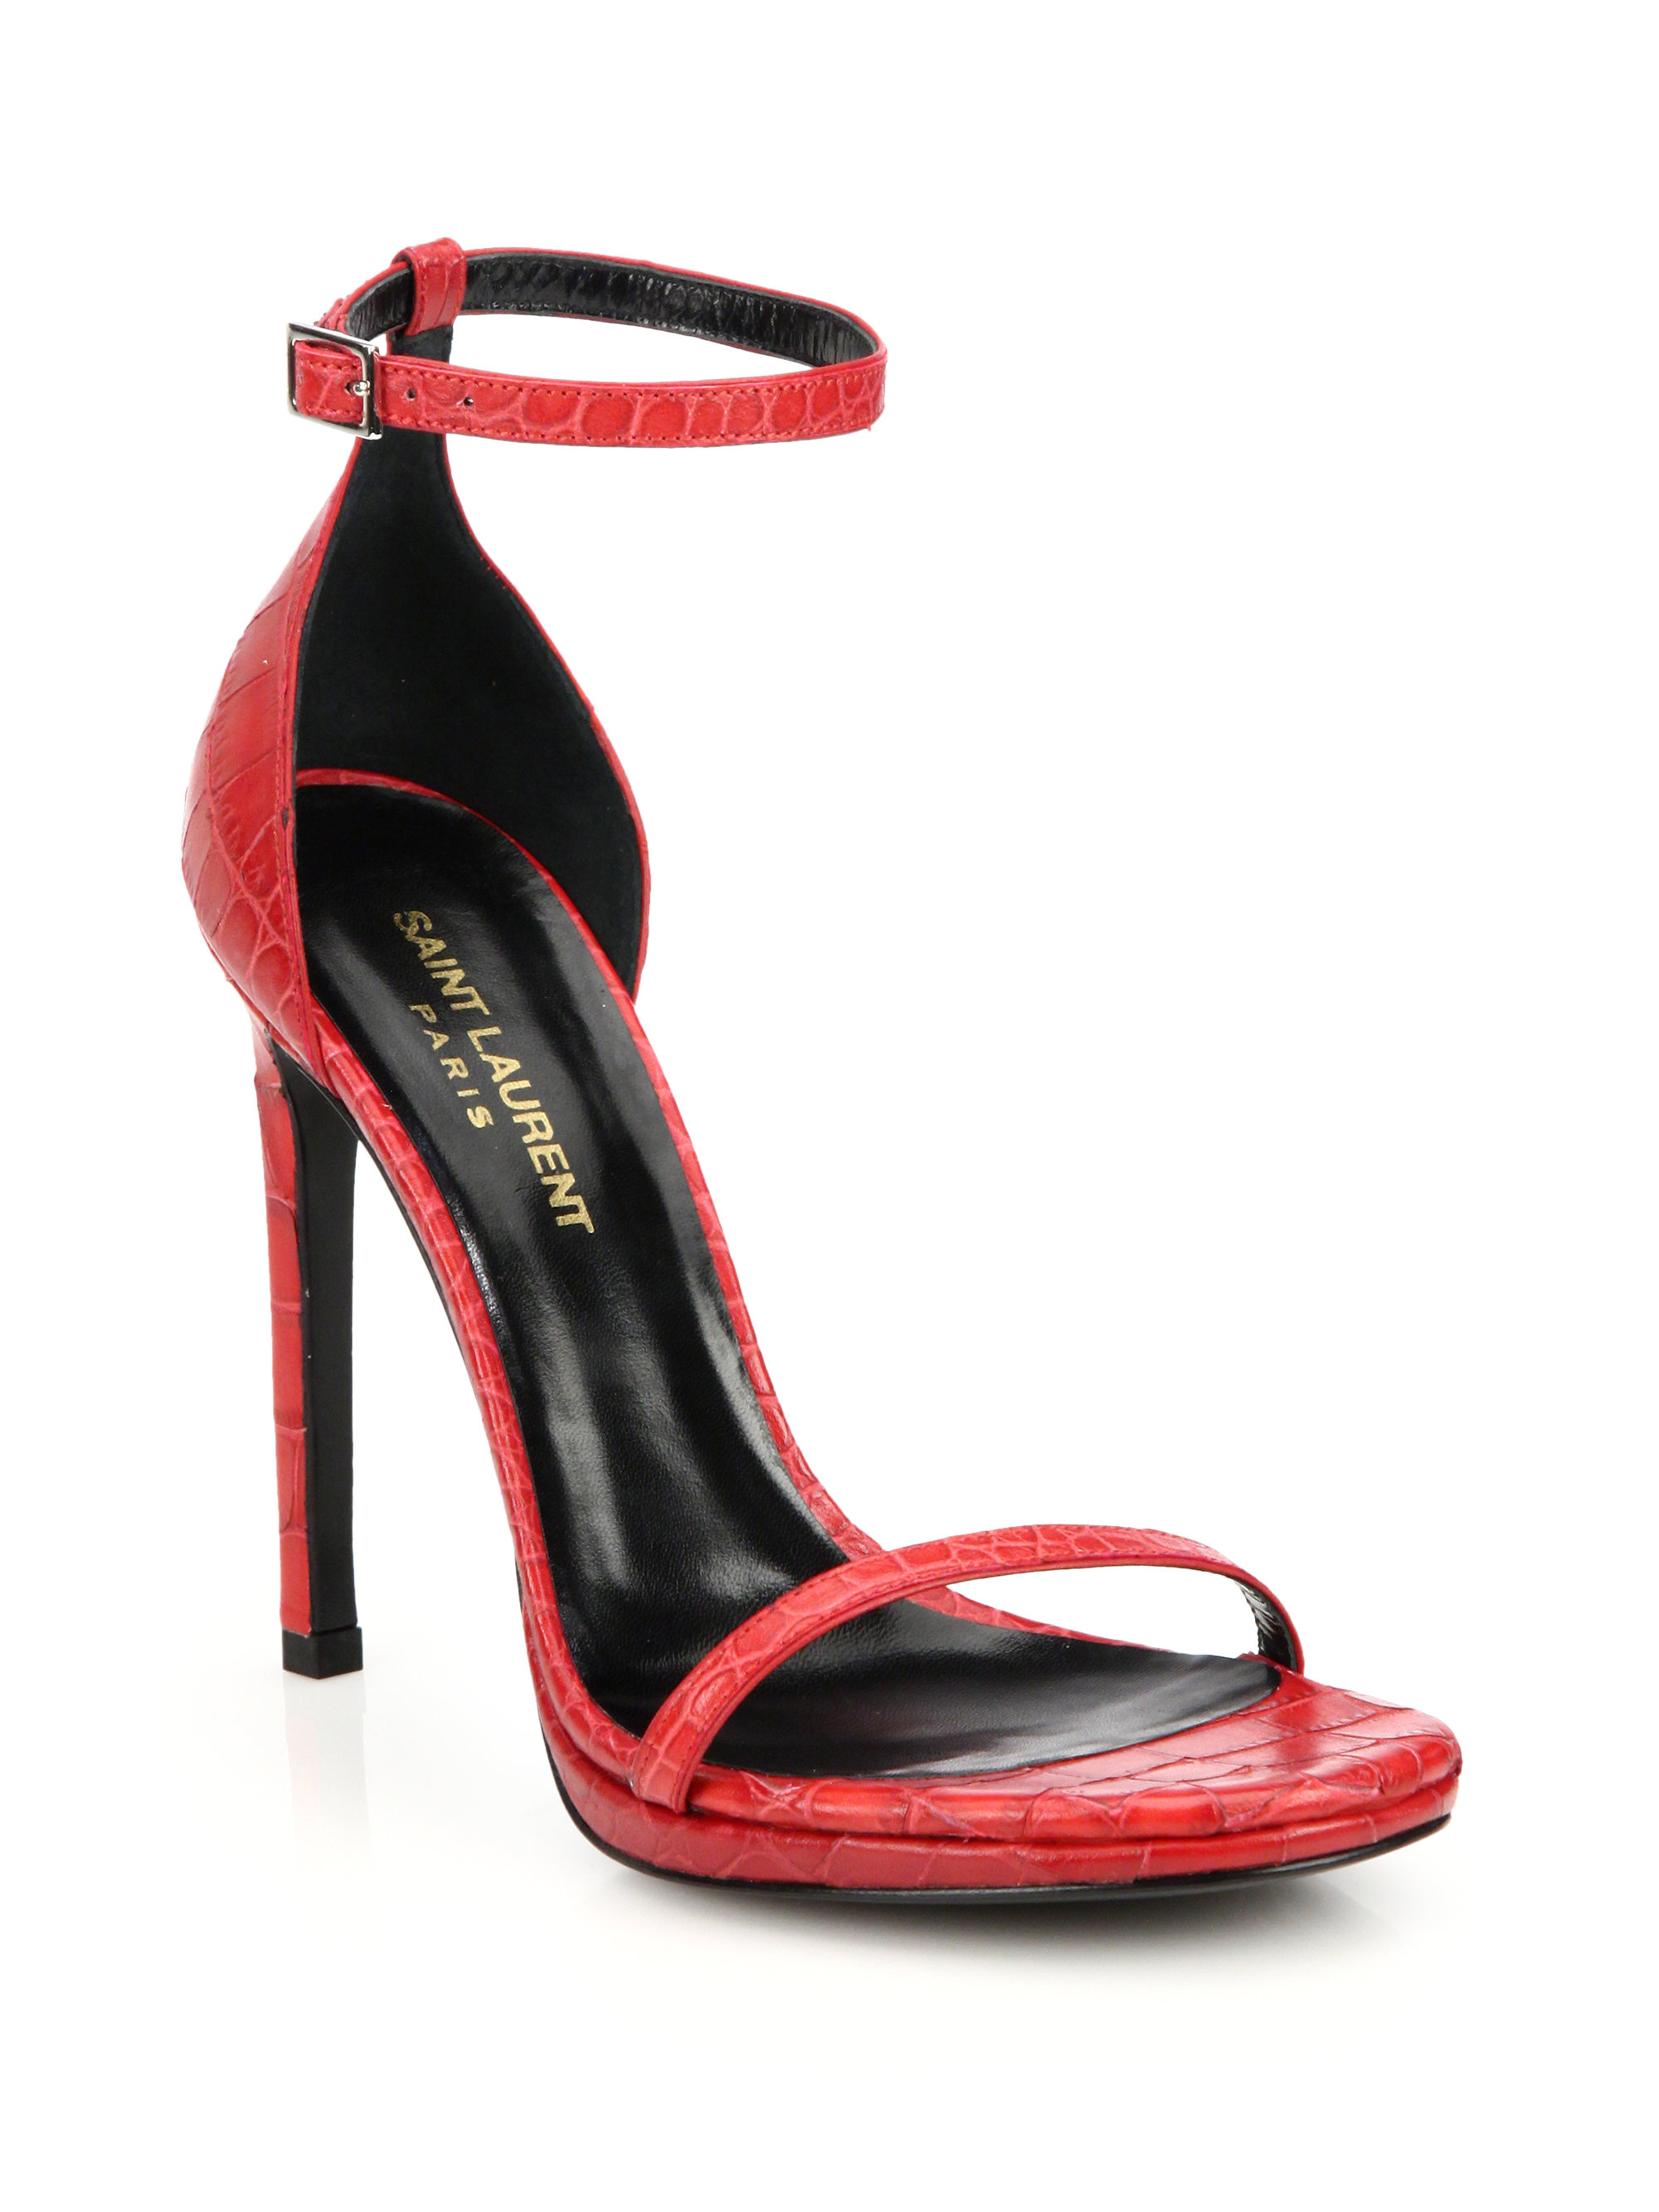 Lyst Saint Laurent Croc Embossed Leather Jane Sandals In Red